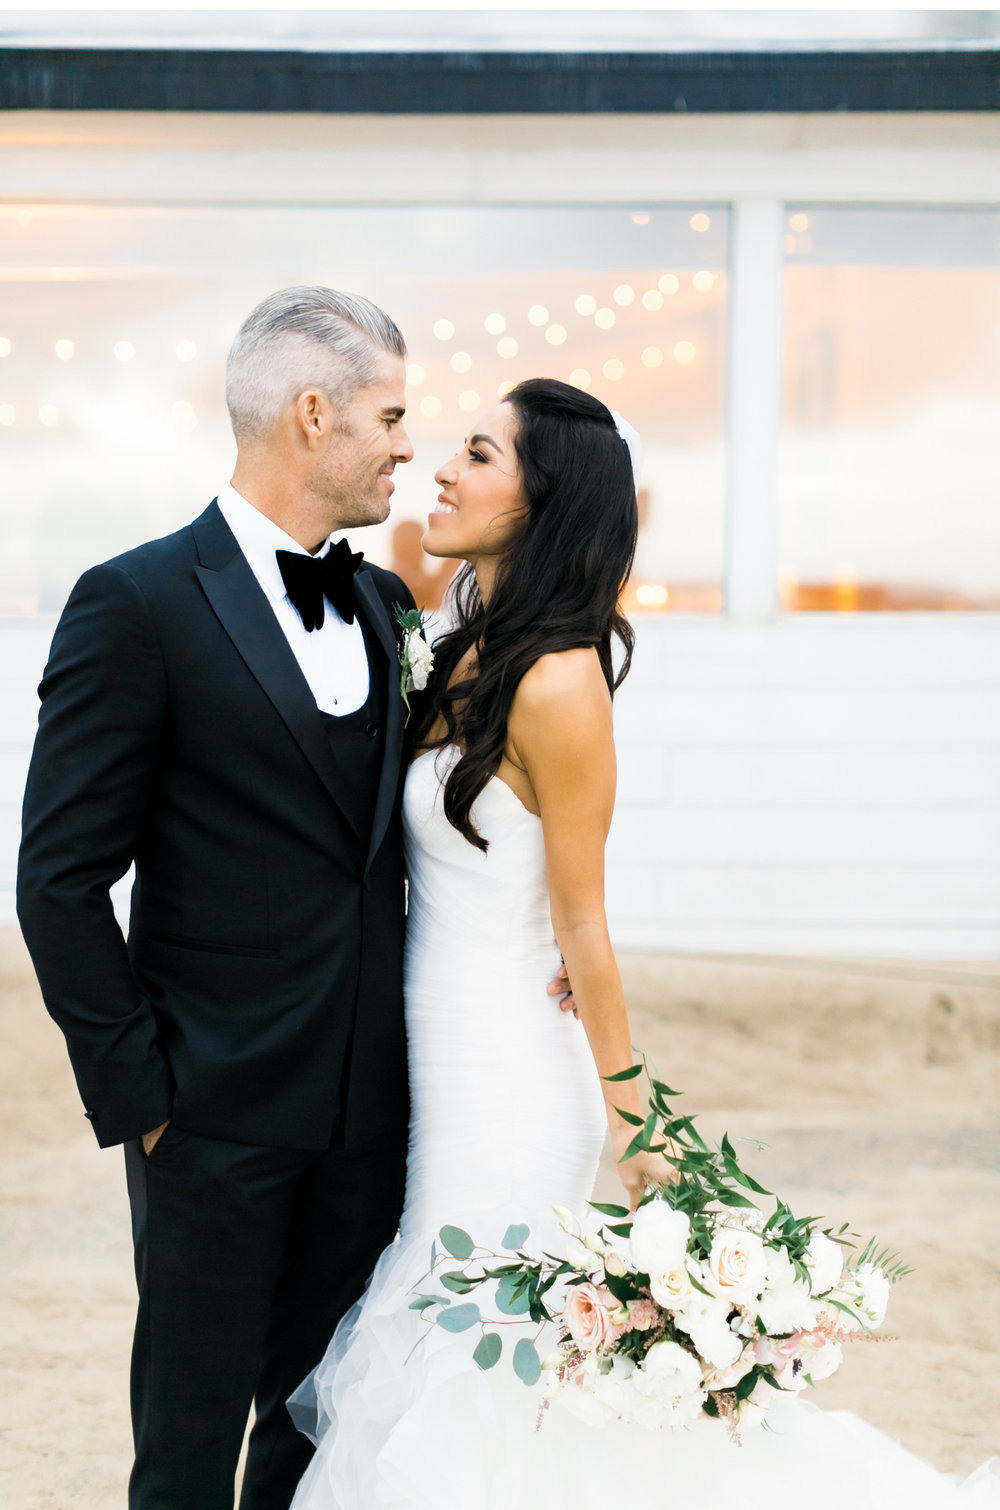 Style-Me-Pretty-Malibu-Beach-CA-Wedding-Natalie-Schutt-Photography_07.jpg